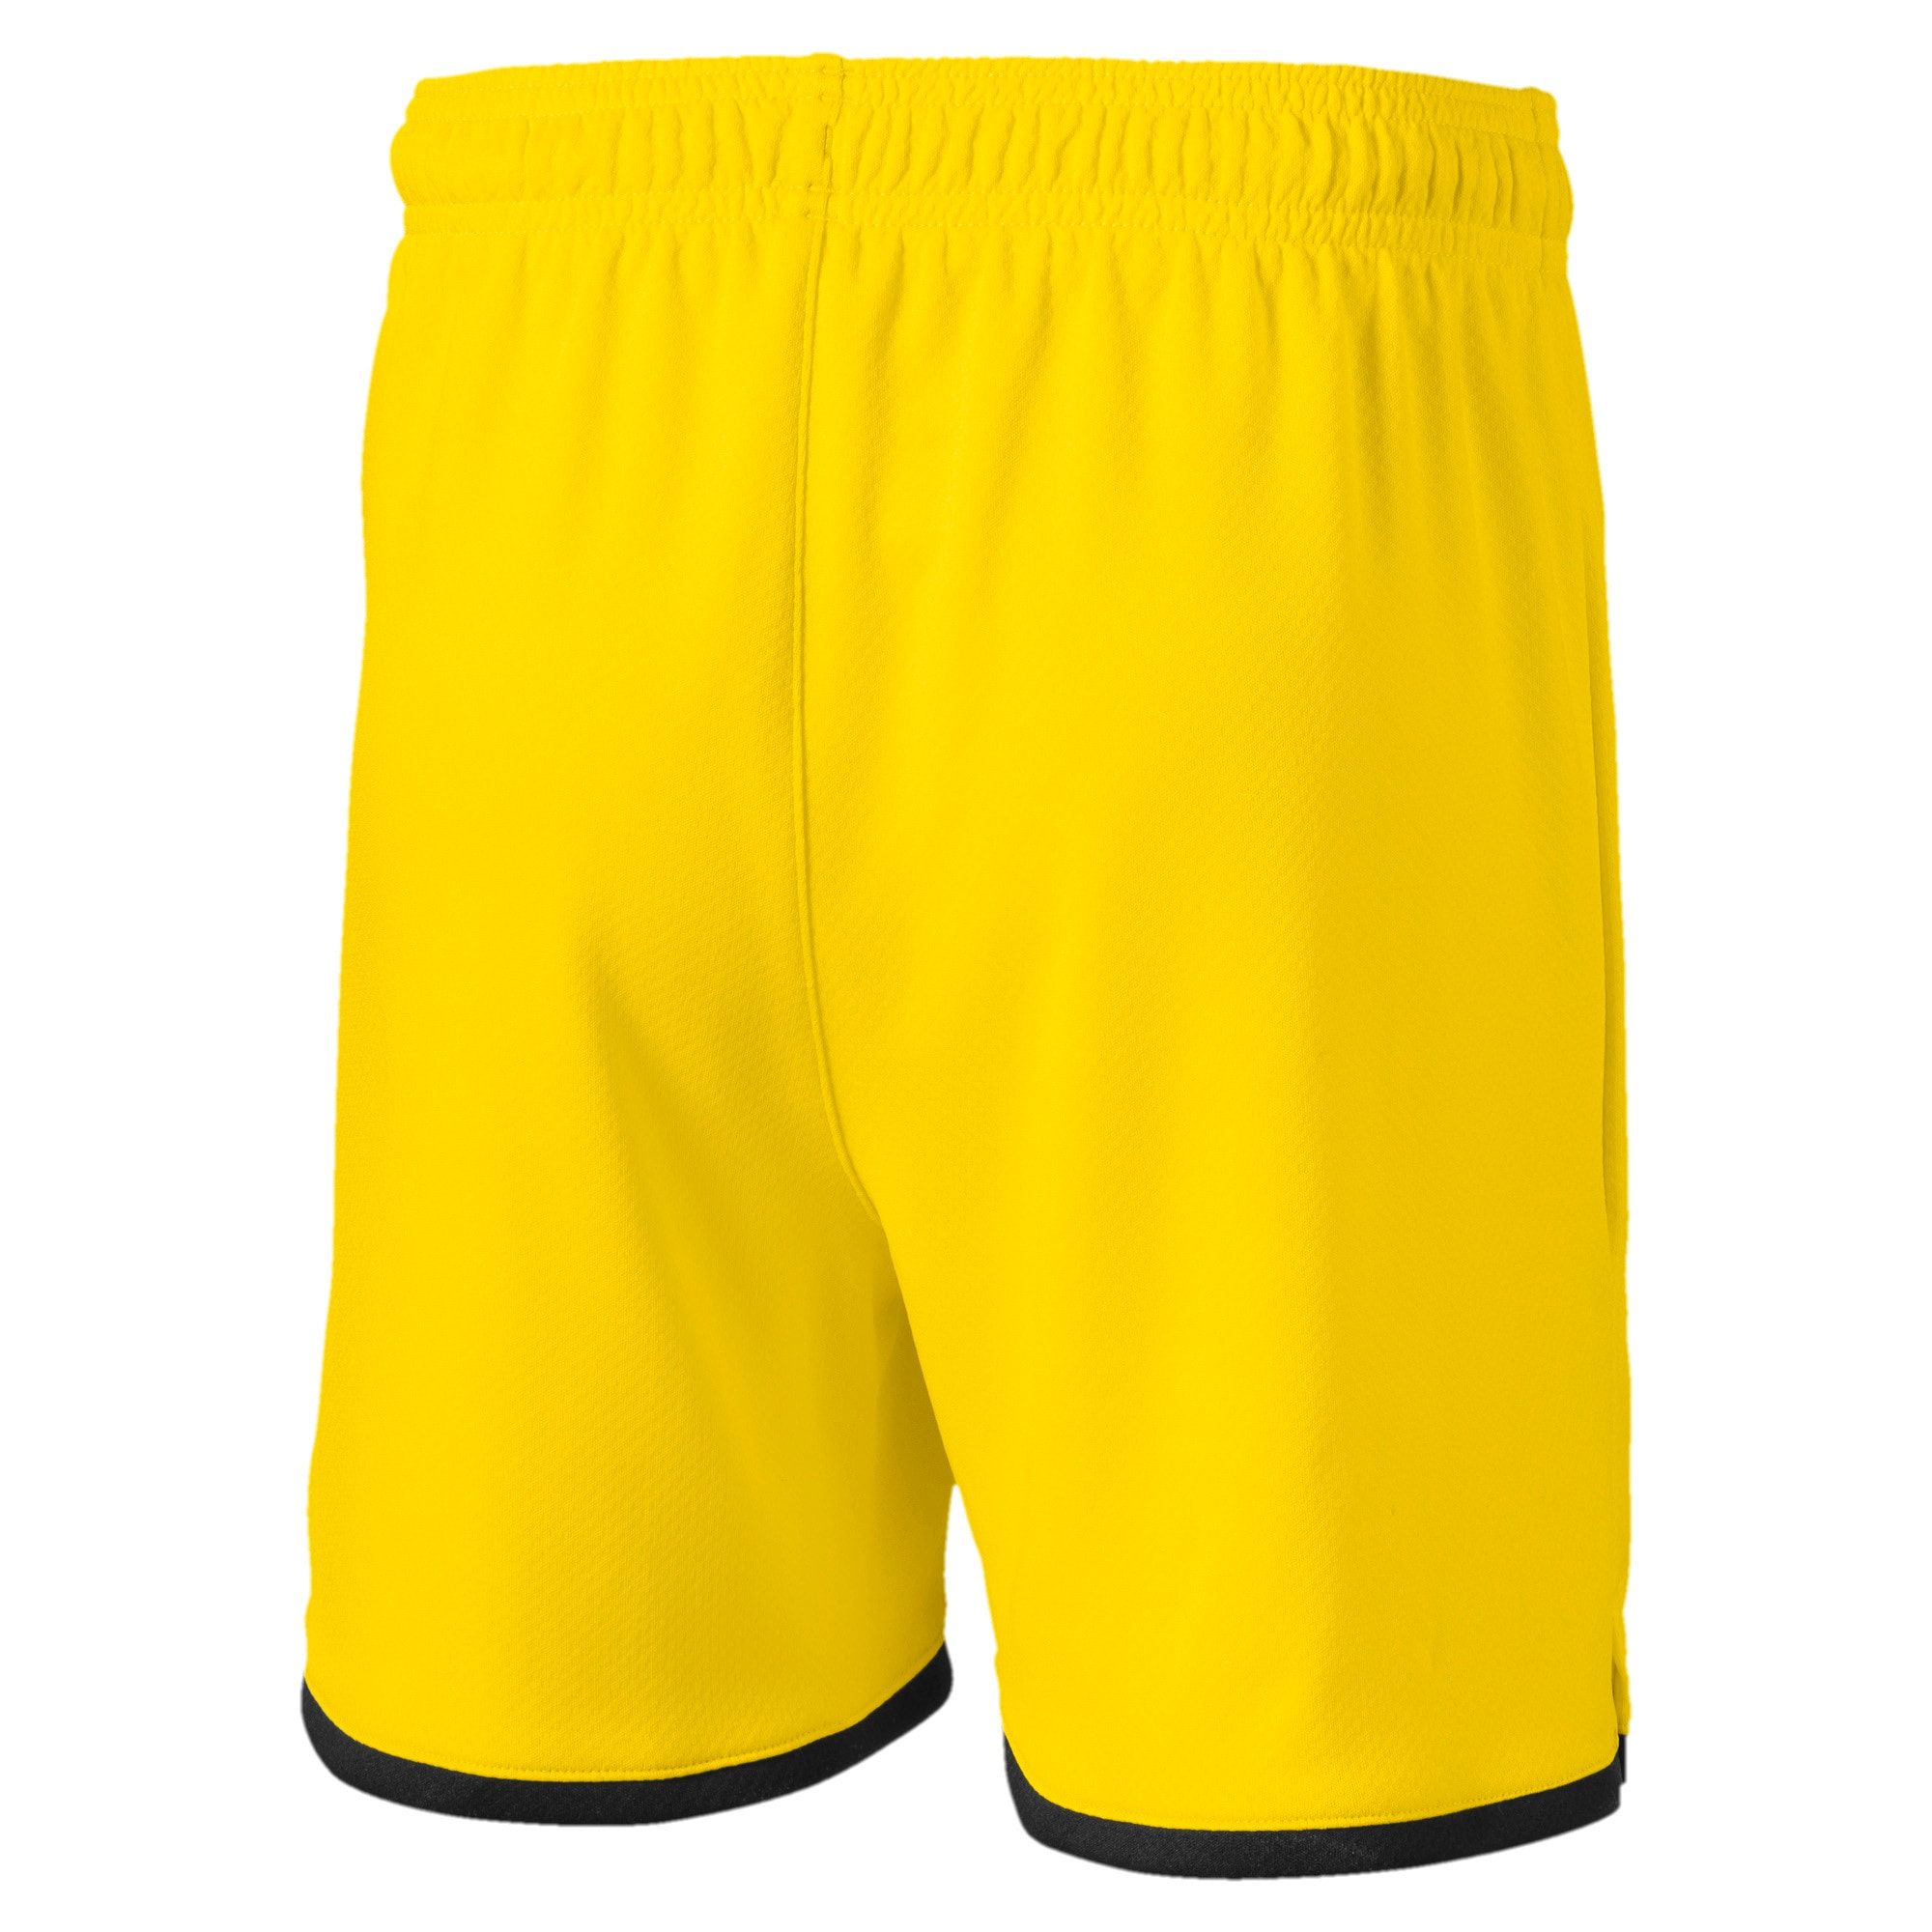 Thumbnail 2 of BVB Boys' Replica Shorts, Cyber Yellow-Puma Black, medium